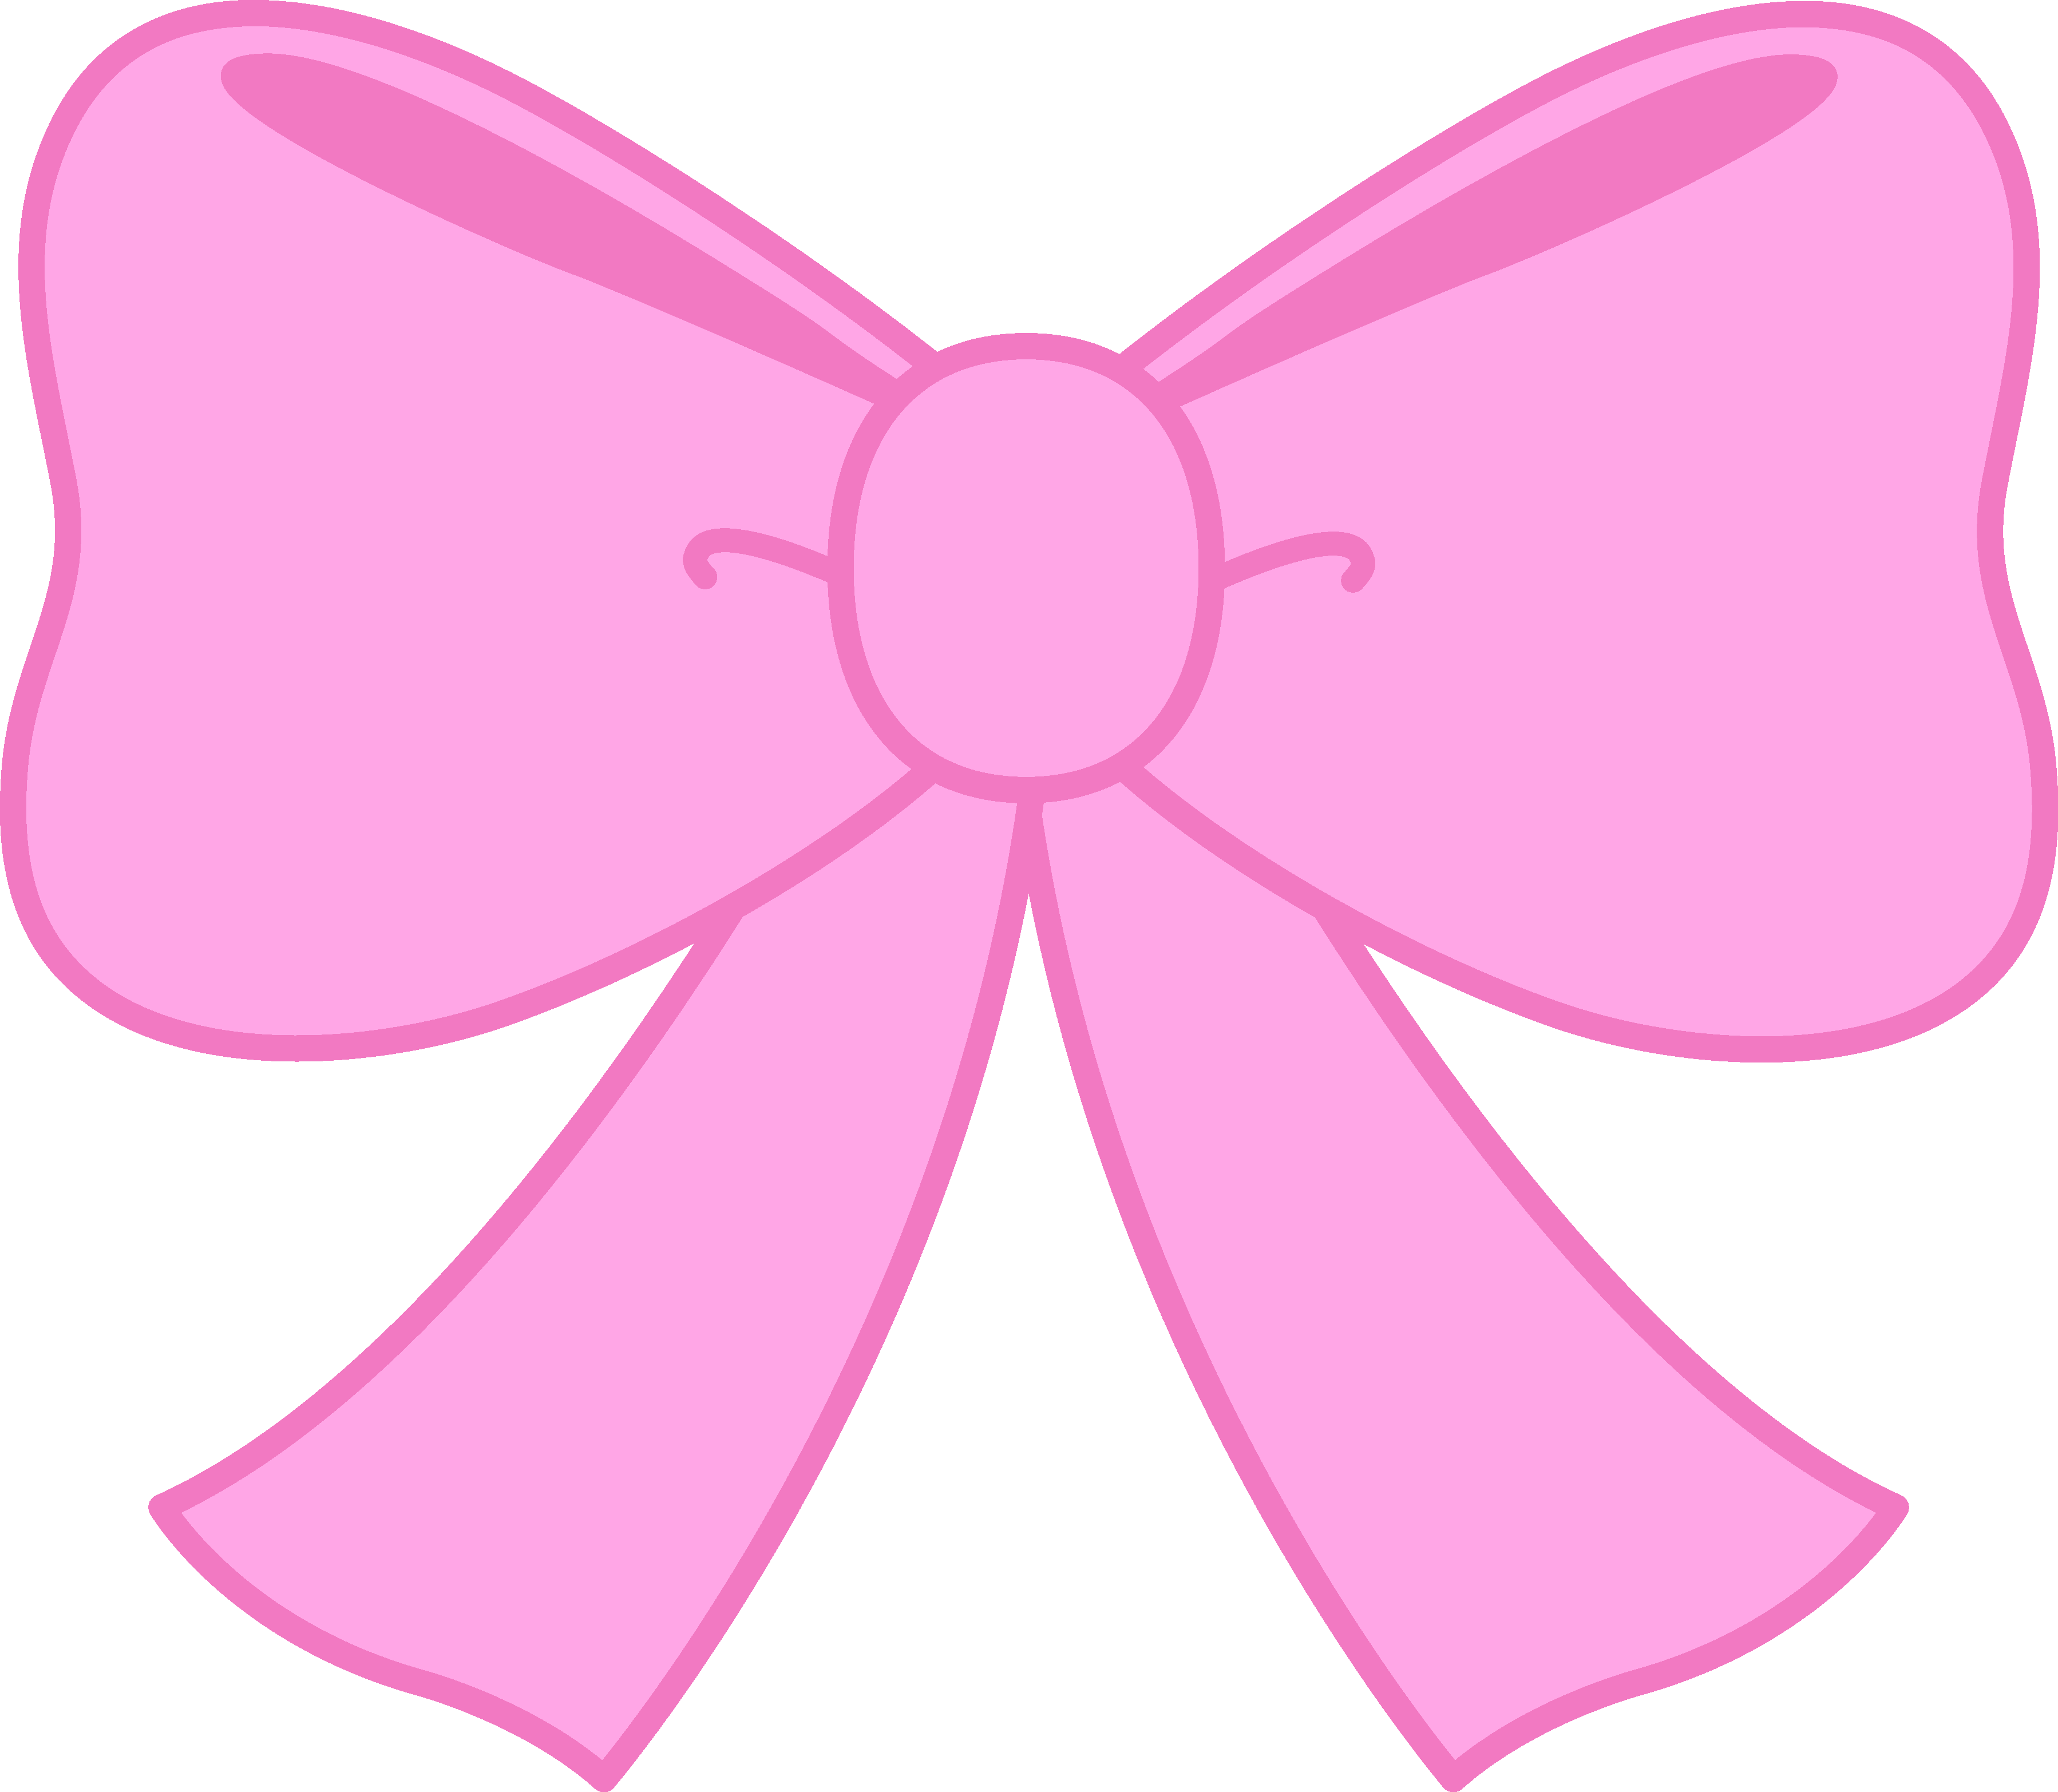 Baby girl face with hair clipart with pink bow png stock Free Free Bow Clipart, Download Free Clip Art, Free Clip Art on ... png stock